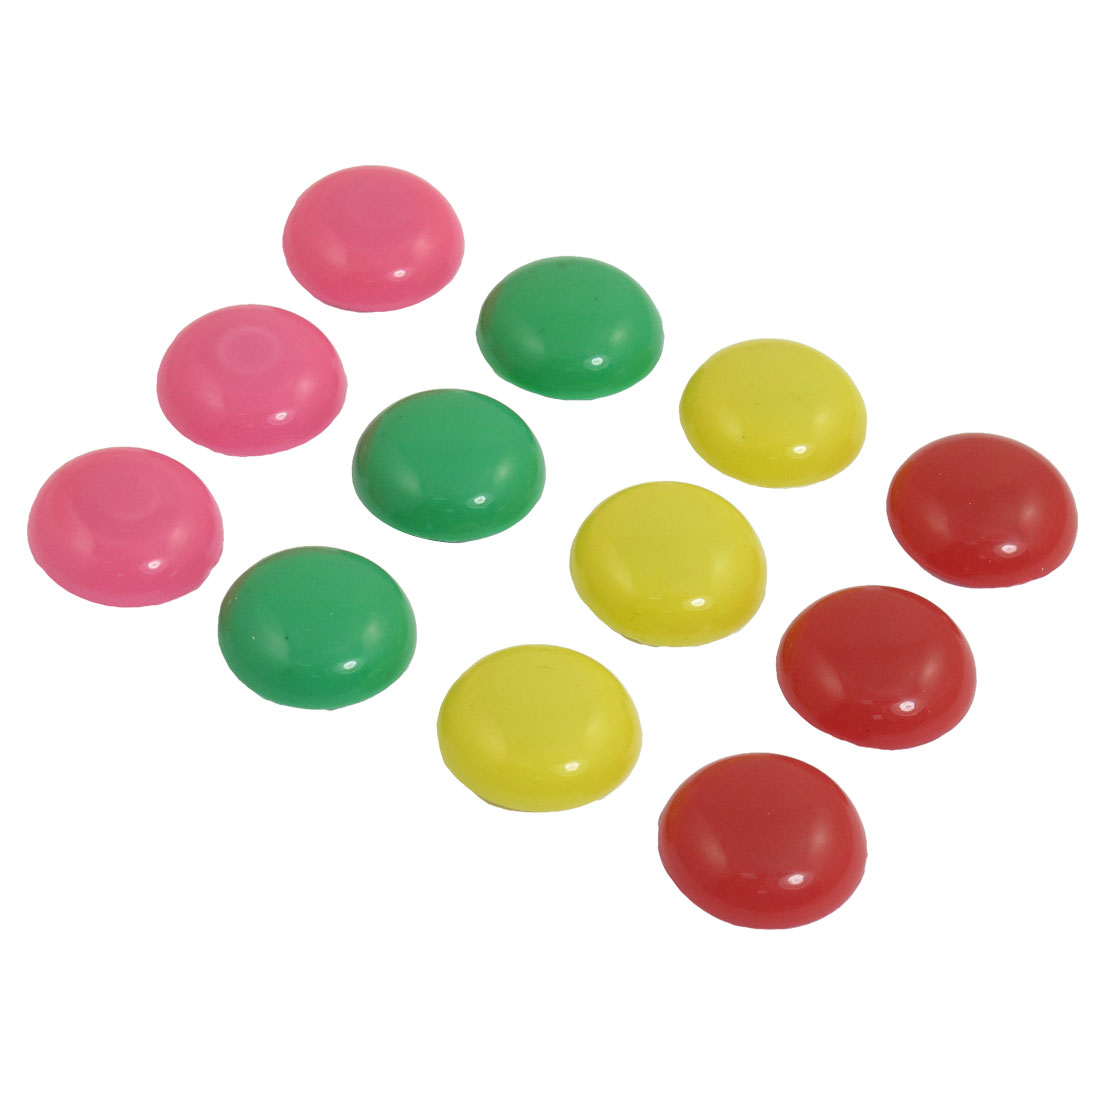 12 Pcs Assorted Color Round Shaped Magnetic Fridge Memo Paper Holder